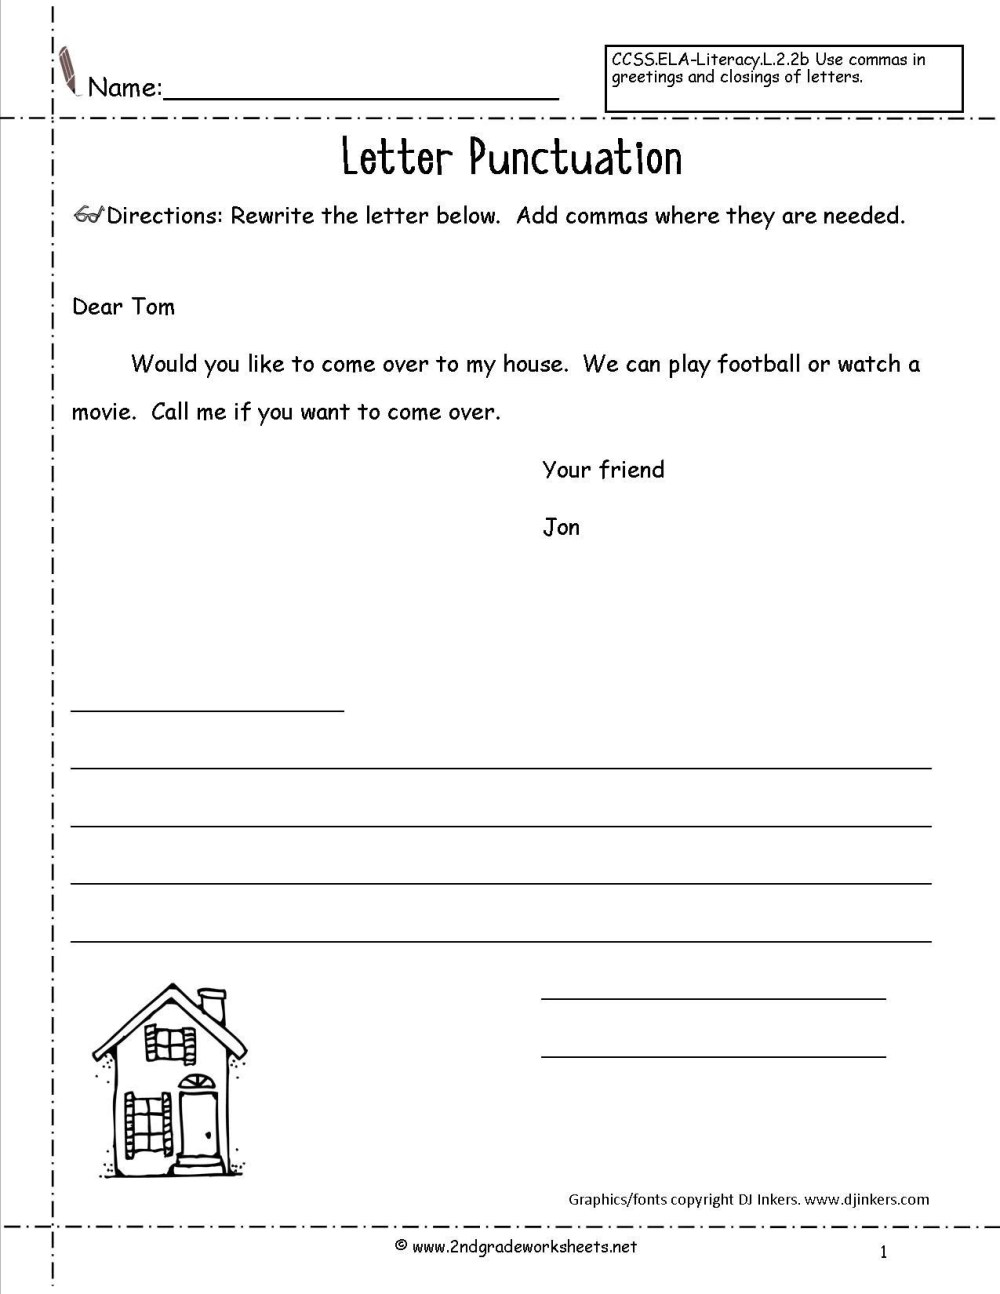 medium resolution of Punctuating Dialogue Worksheet   Printable Worksheets and Activities for  Teachers